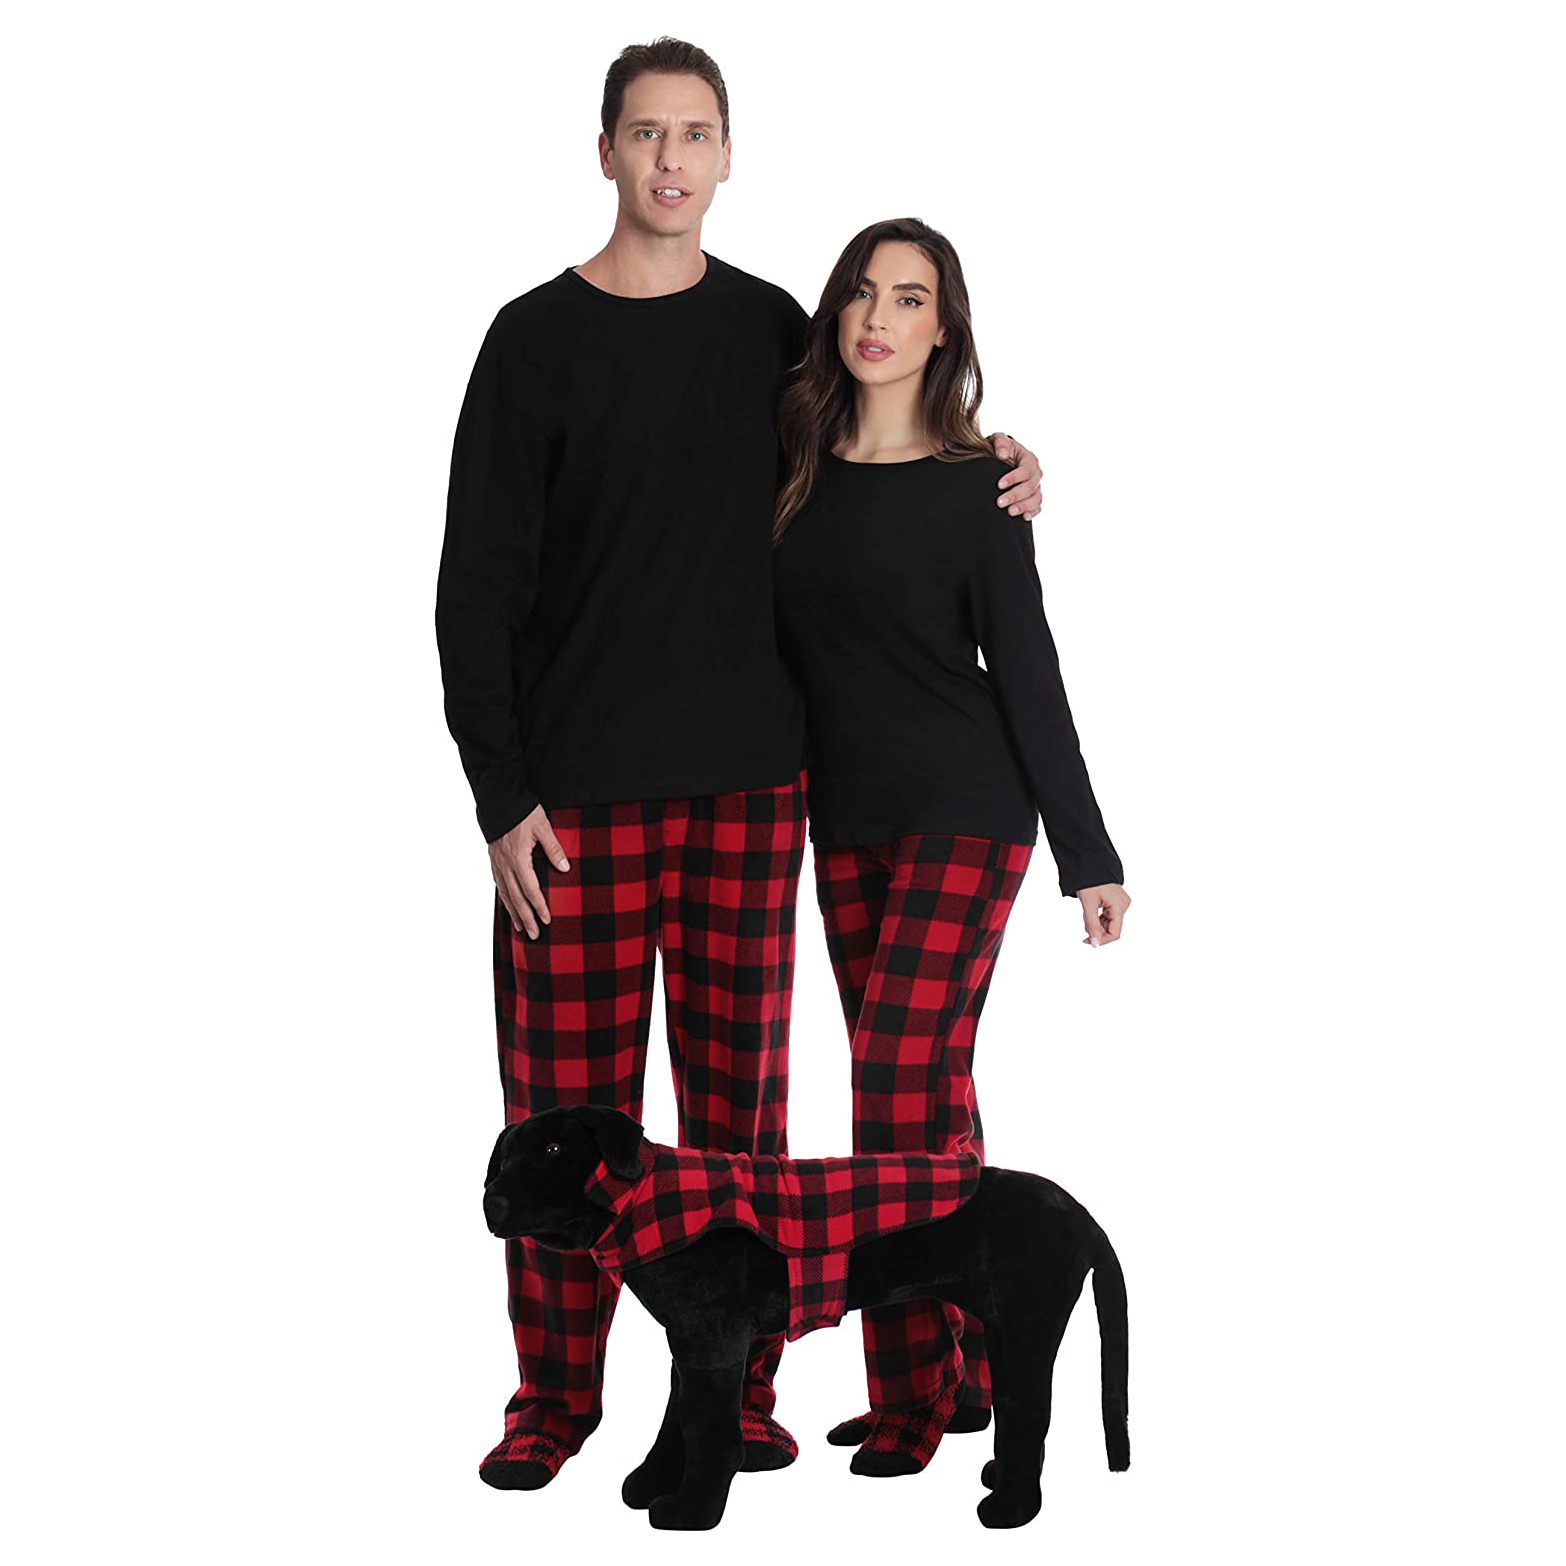 followme-matching-pajamas-for-dog-and-owner